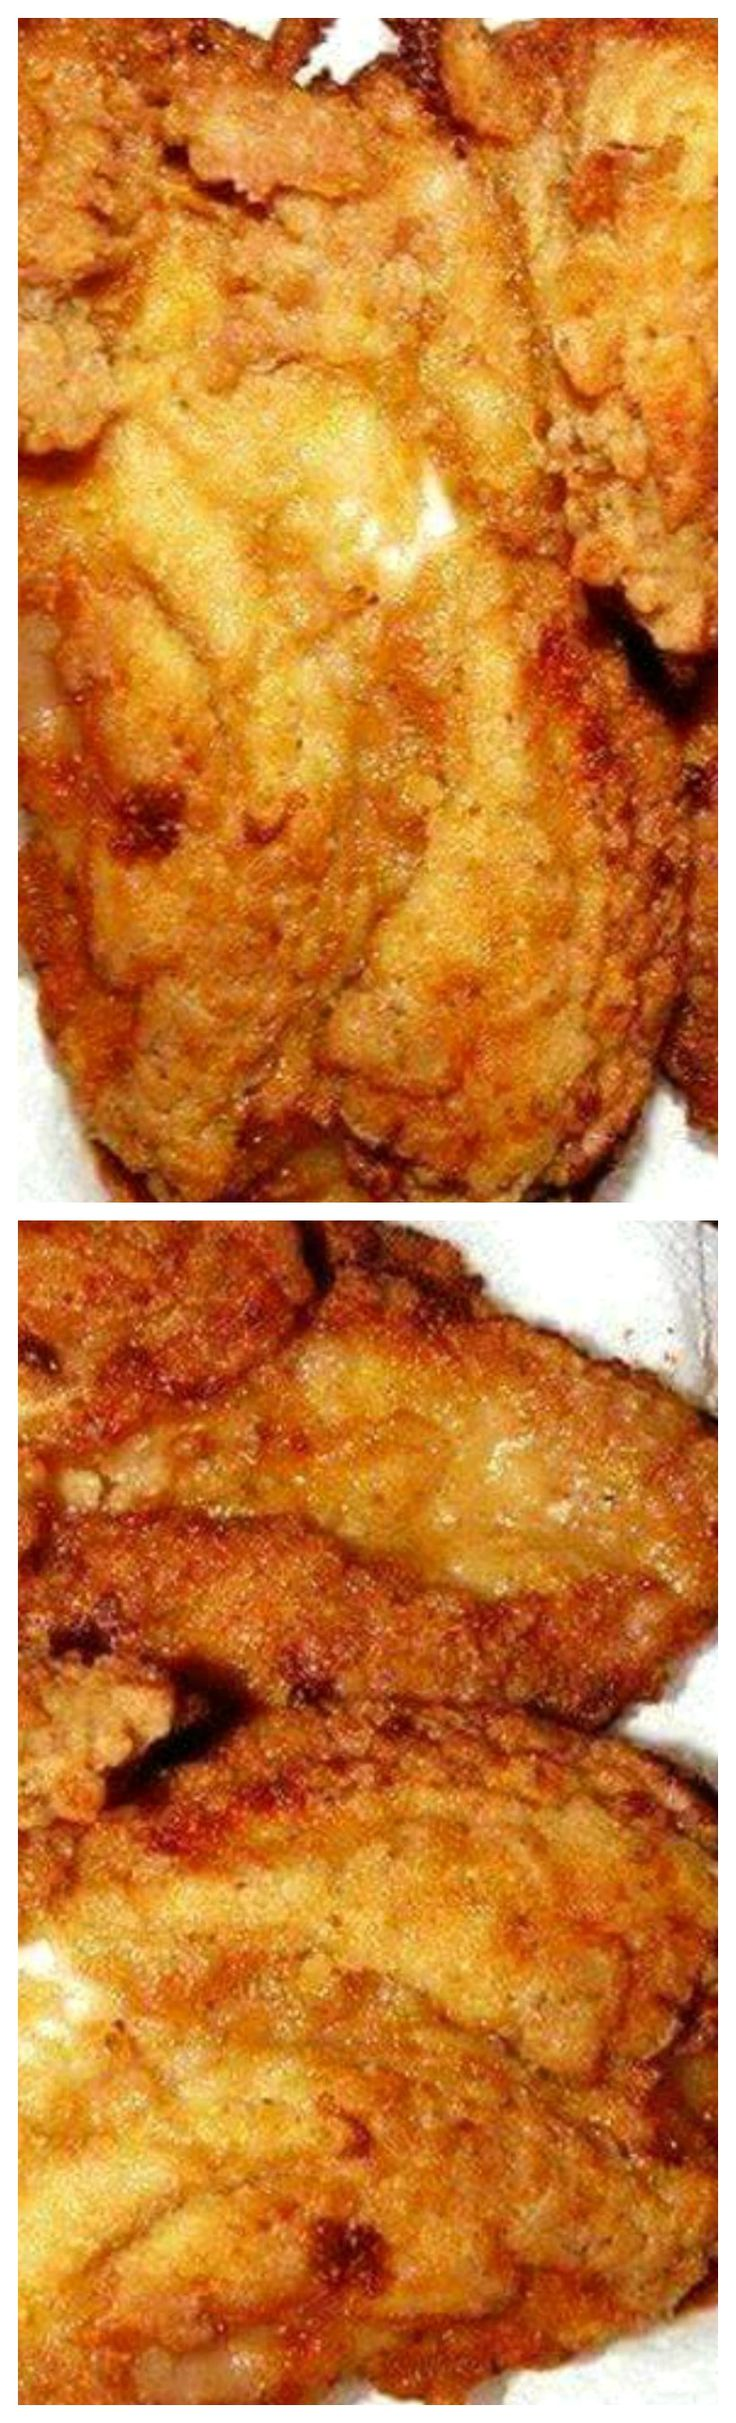 how to make the best batter for fried chicken